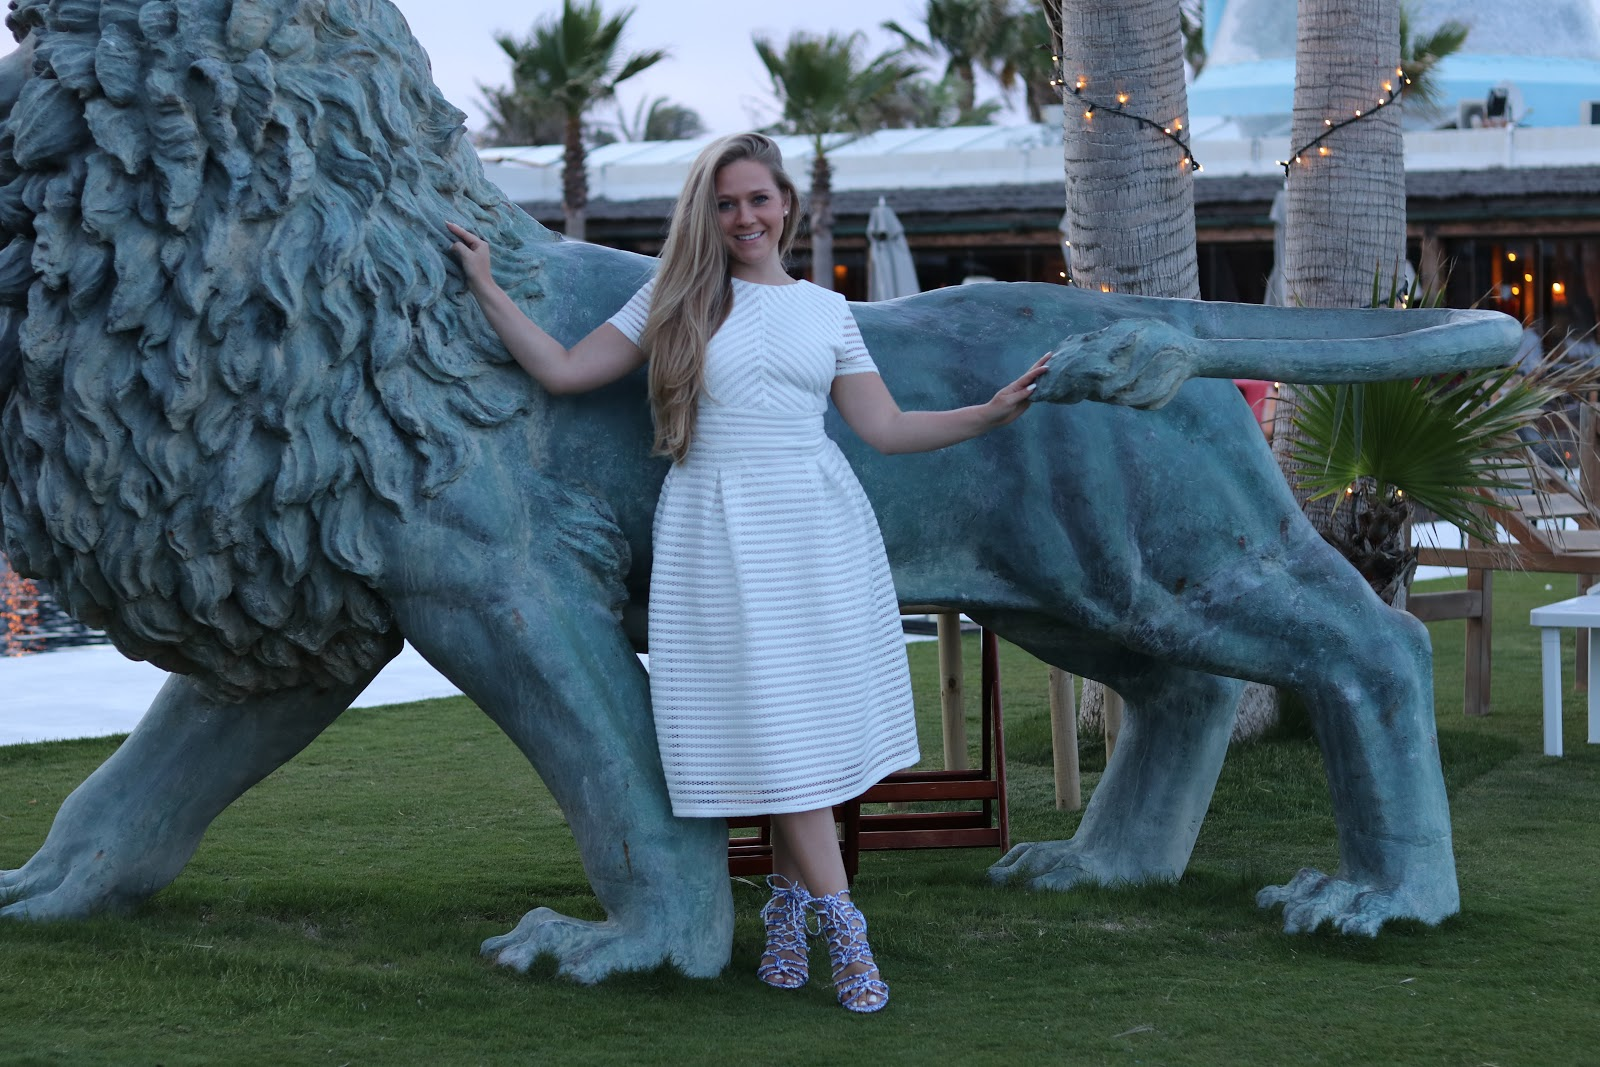 Katie Heath wearing a Boohoo dress leaning against a lion at Trocadero in Sotogrande, Spain